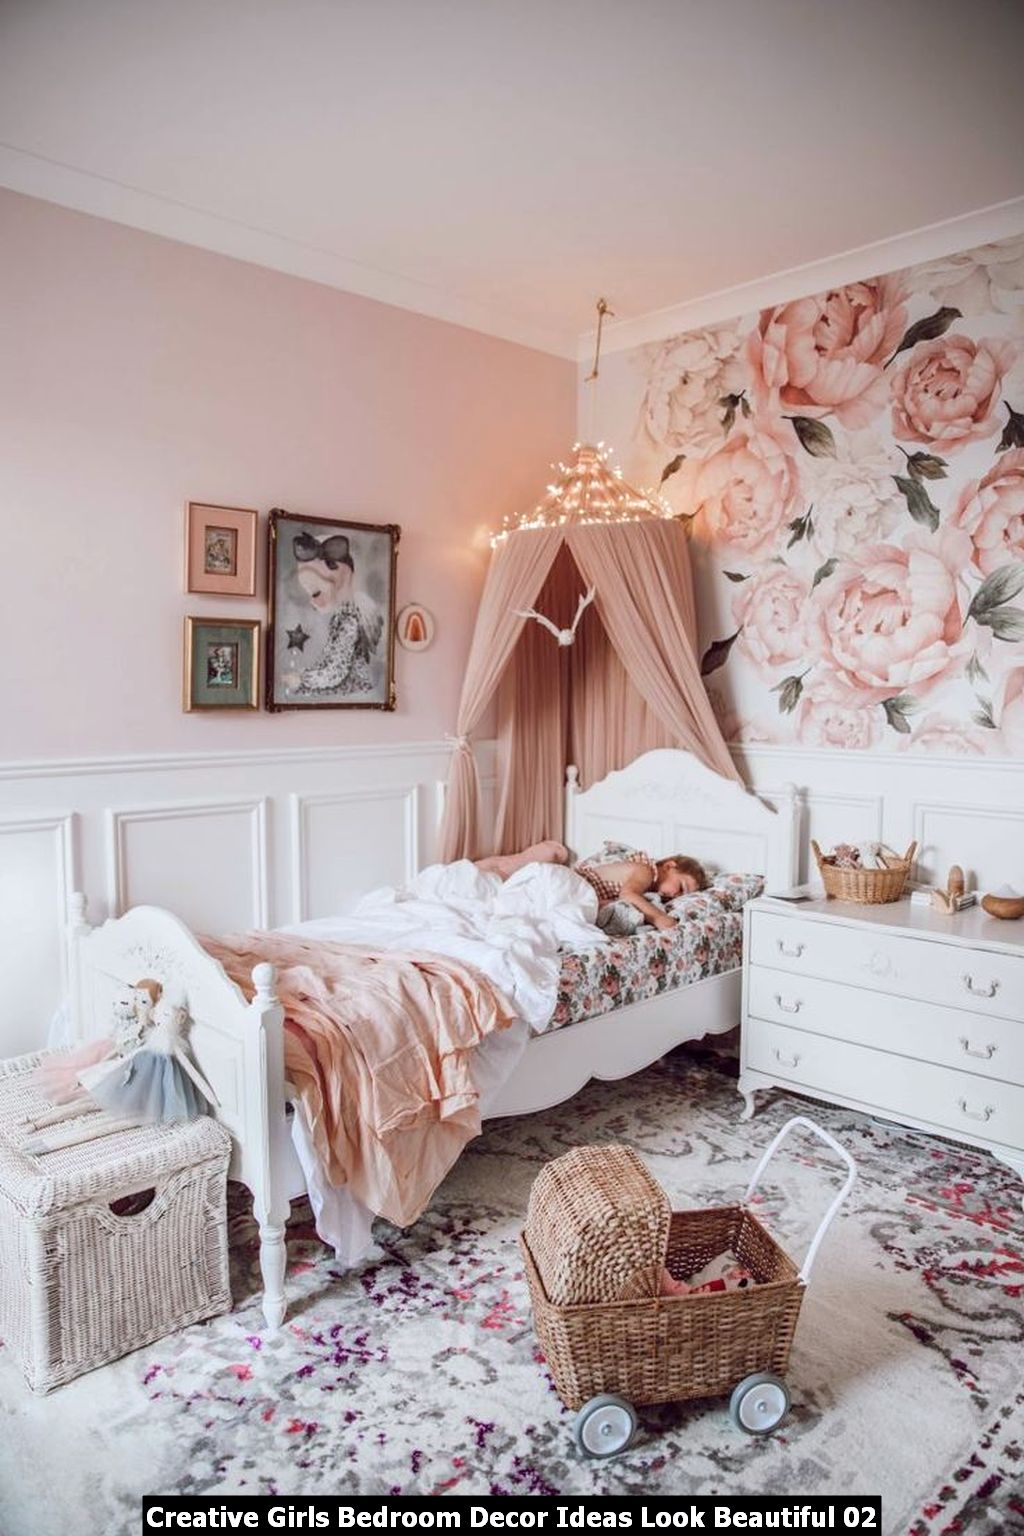 Creative Girls Bedroom Decor Ideas Look Beautiful 02